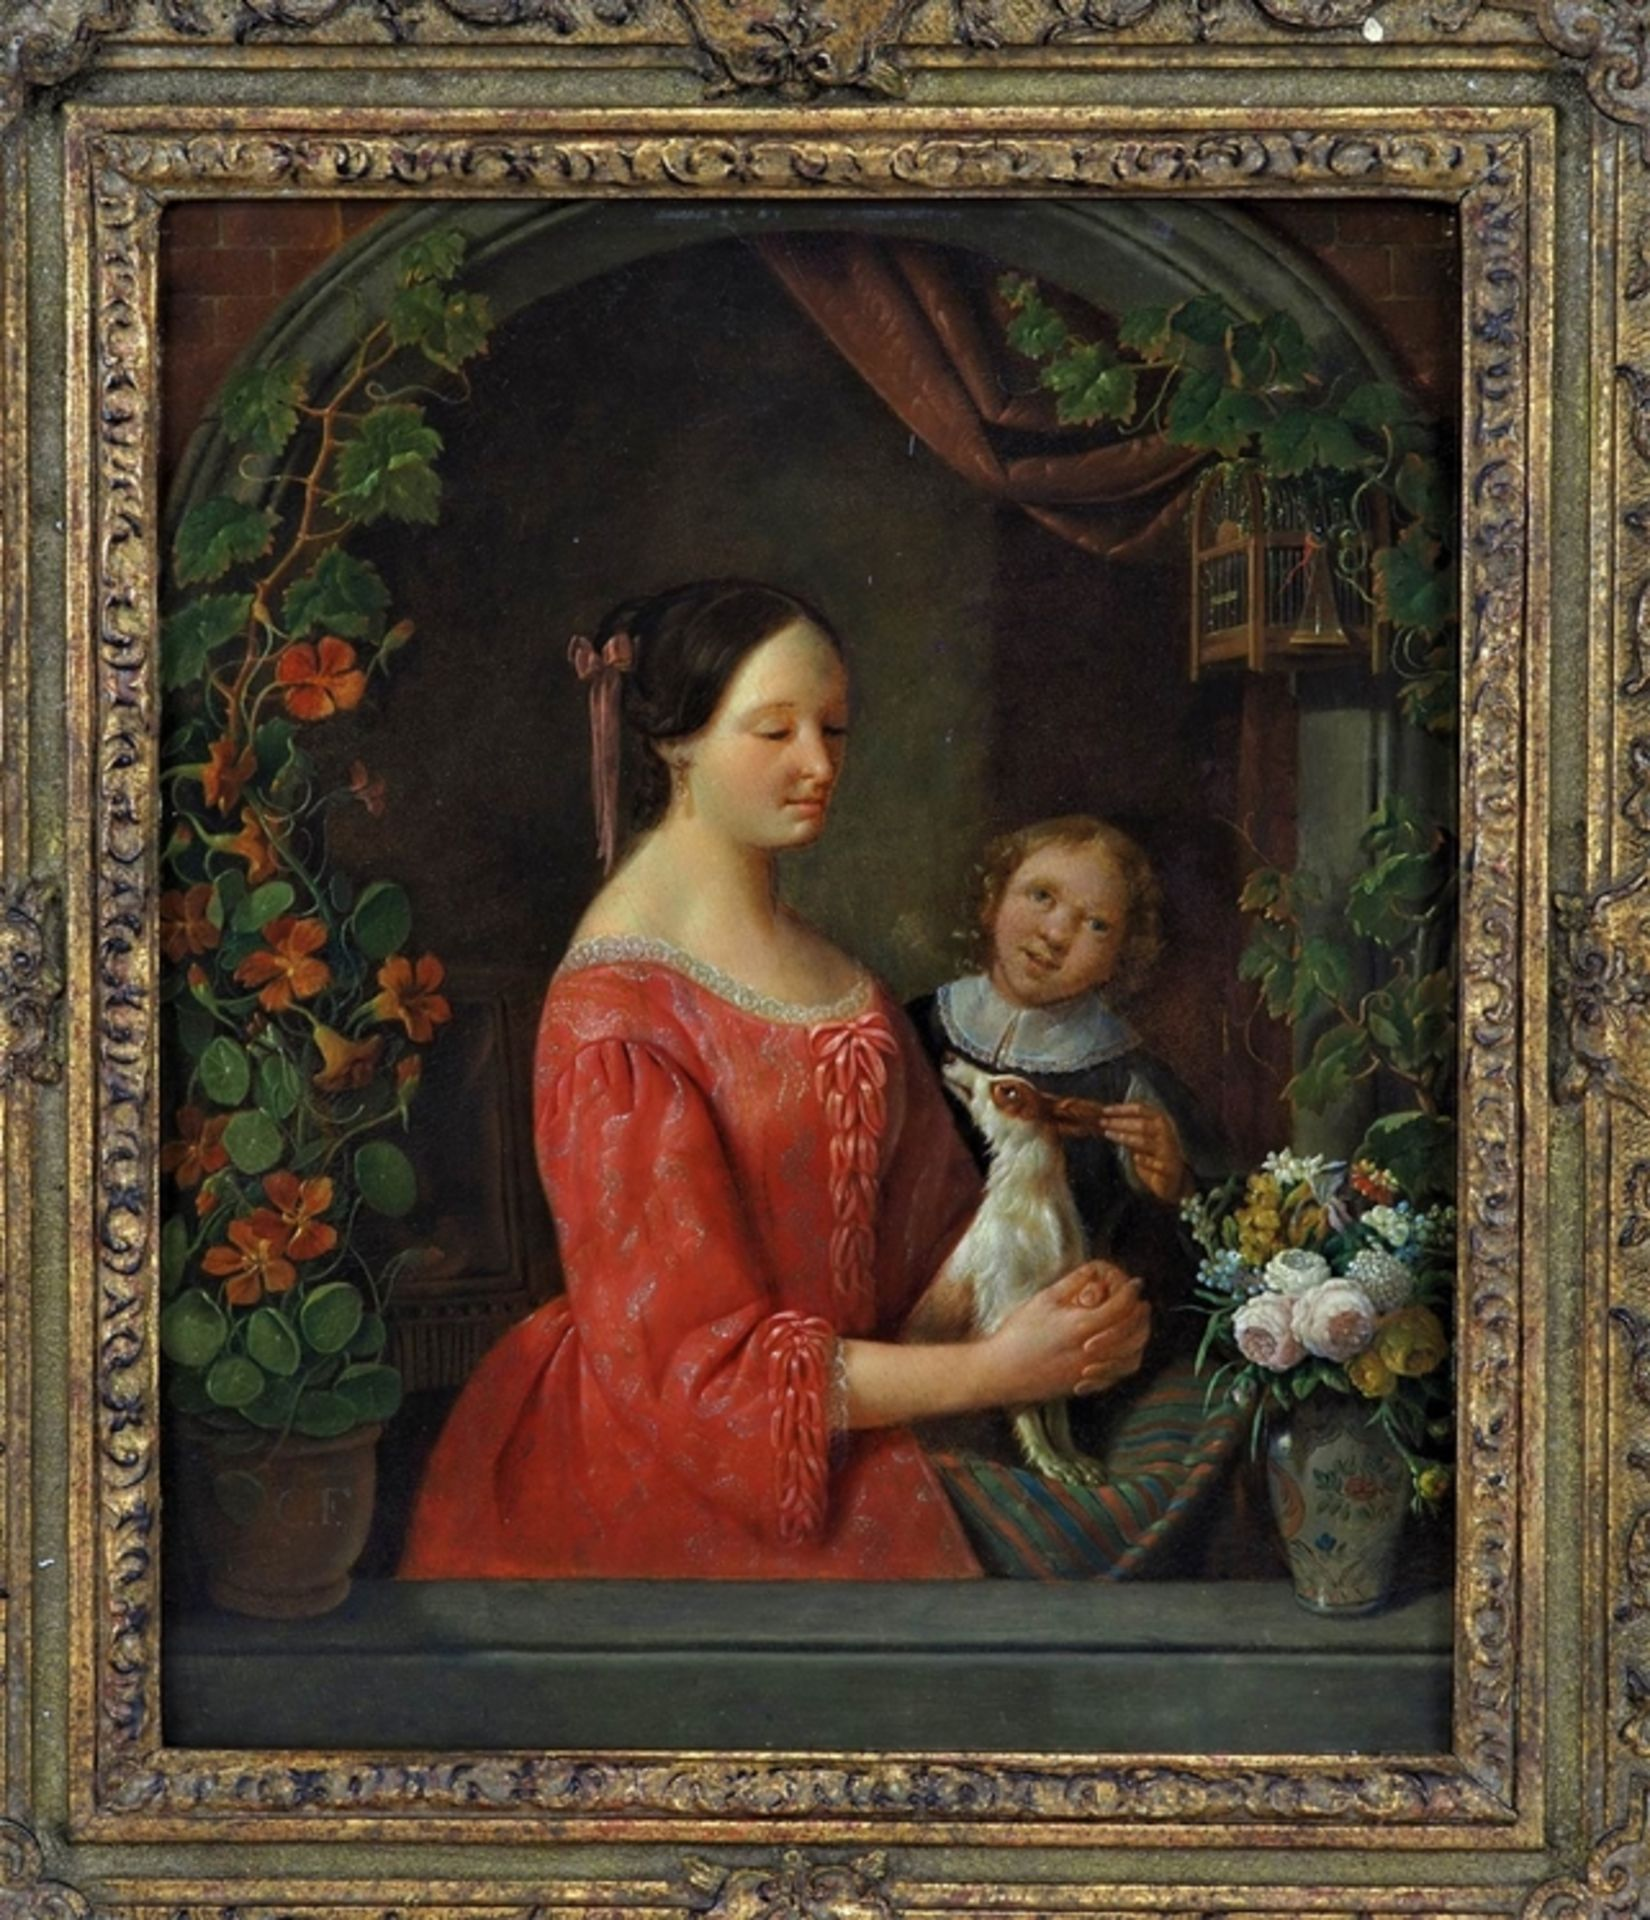 Christian Friedrich Fues (1772, Tübingen - 1836, Nuremberg) - Portrait of a mother with child and d - Image 2 of 5